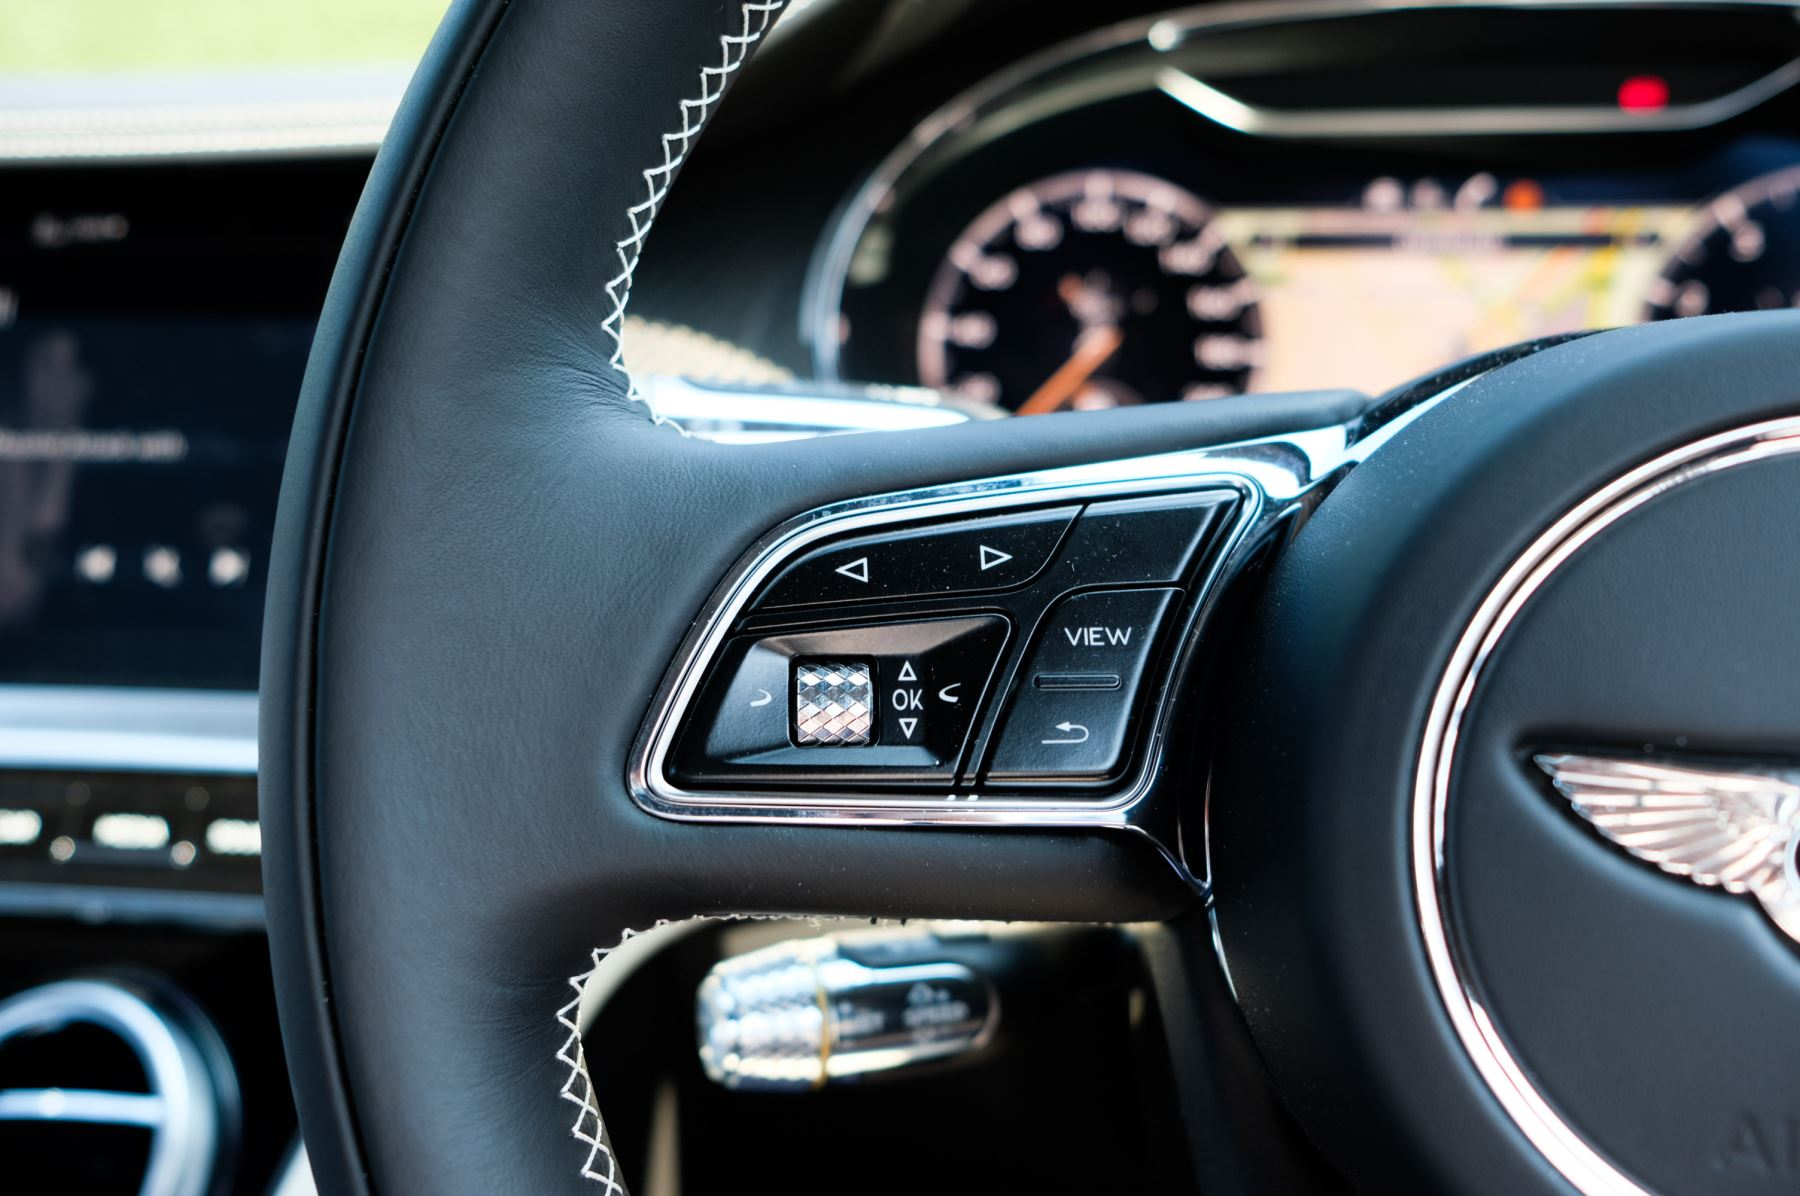 Bentley Continental GTC 4.0 V8 - Mulliner Driving Specification and Blackline Specification with 22 Inch Alloys image 18